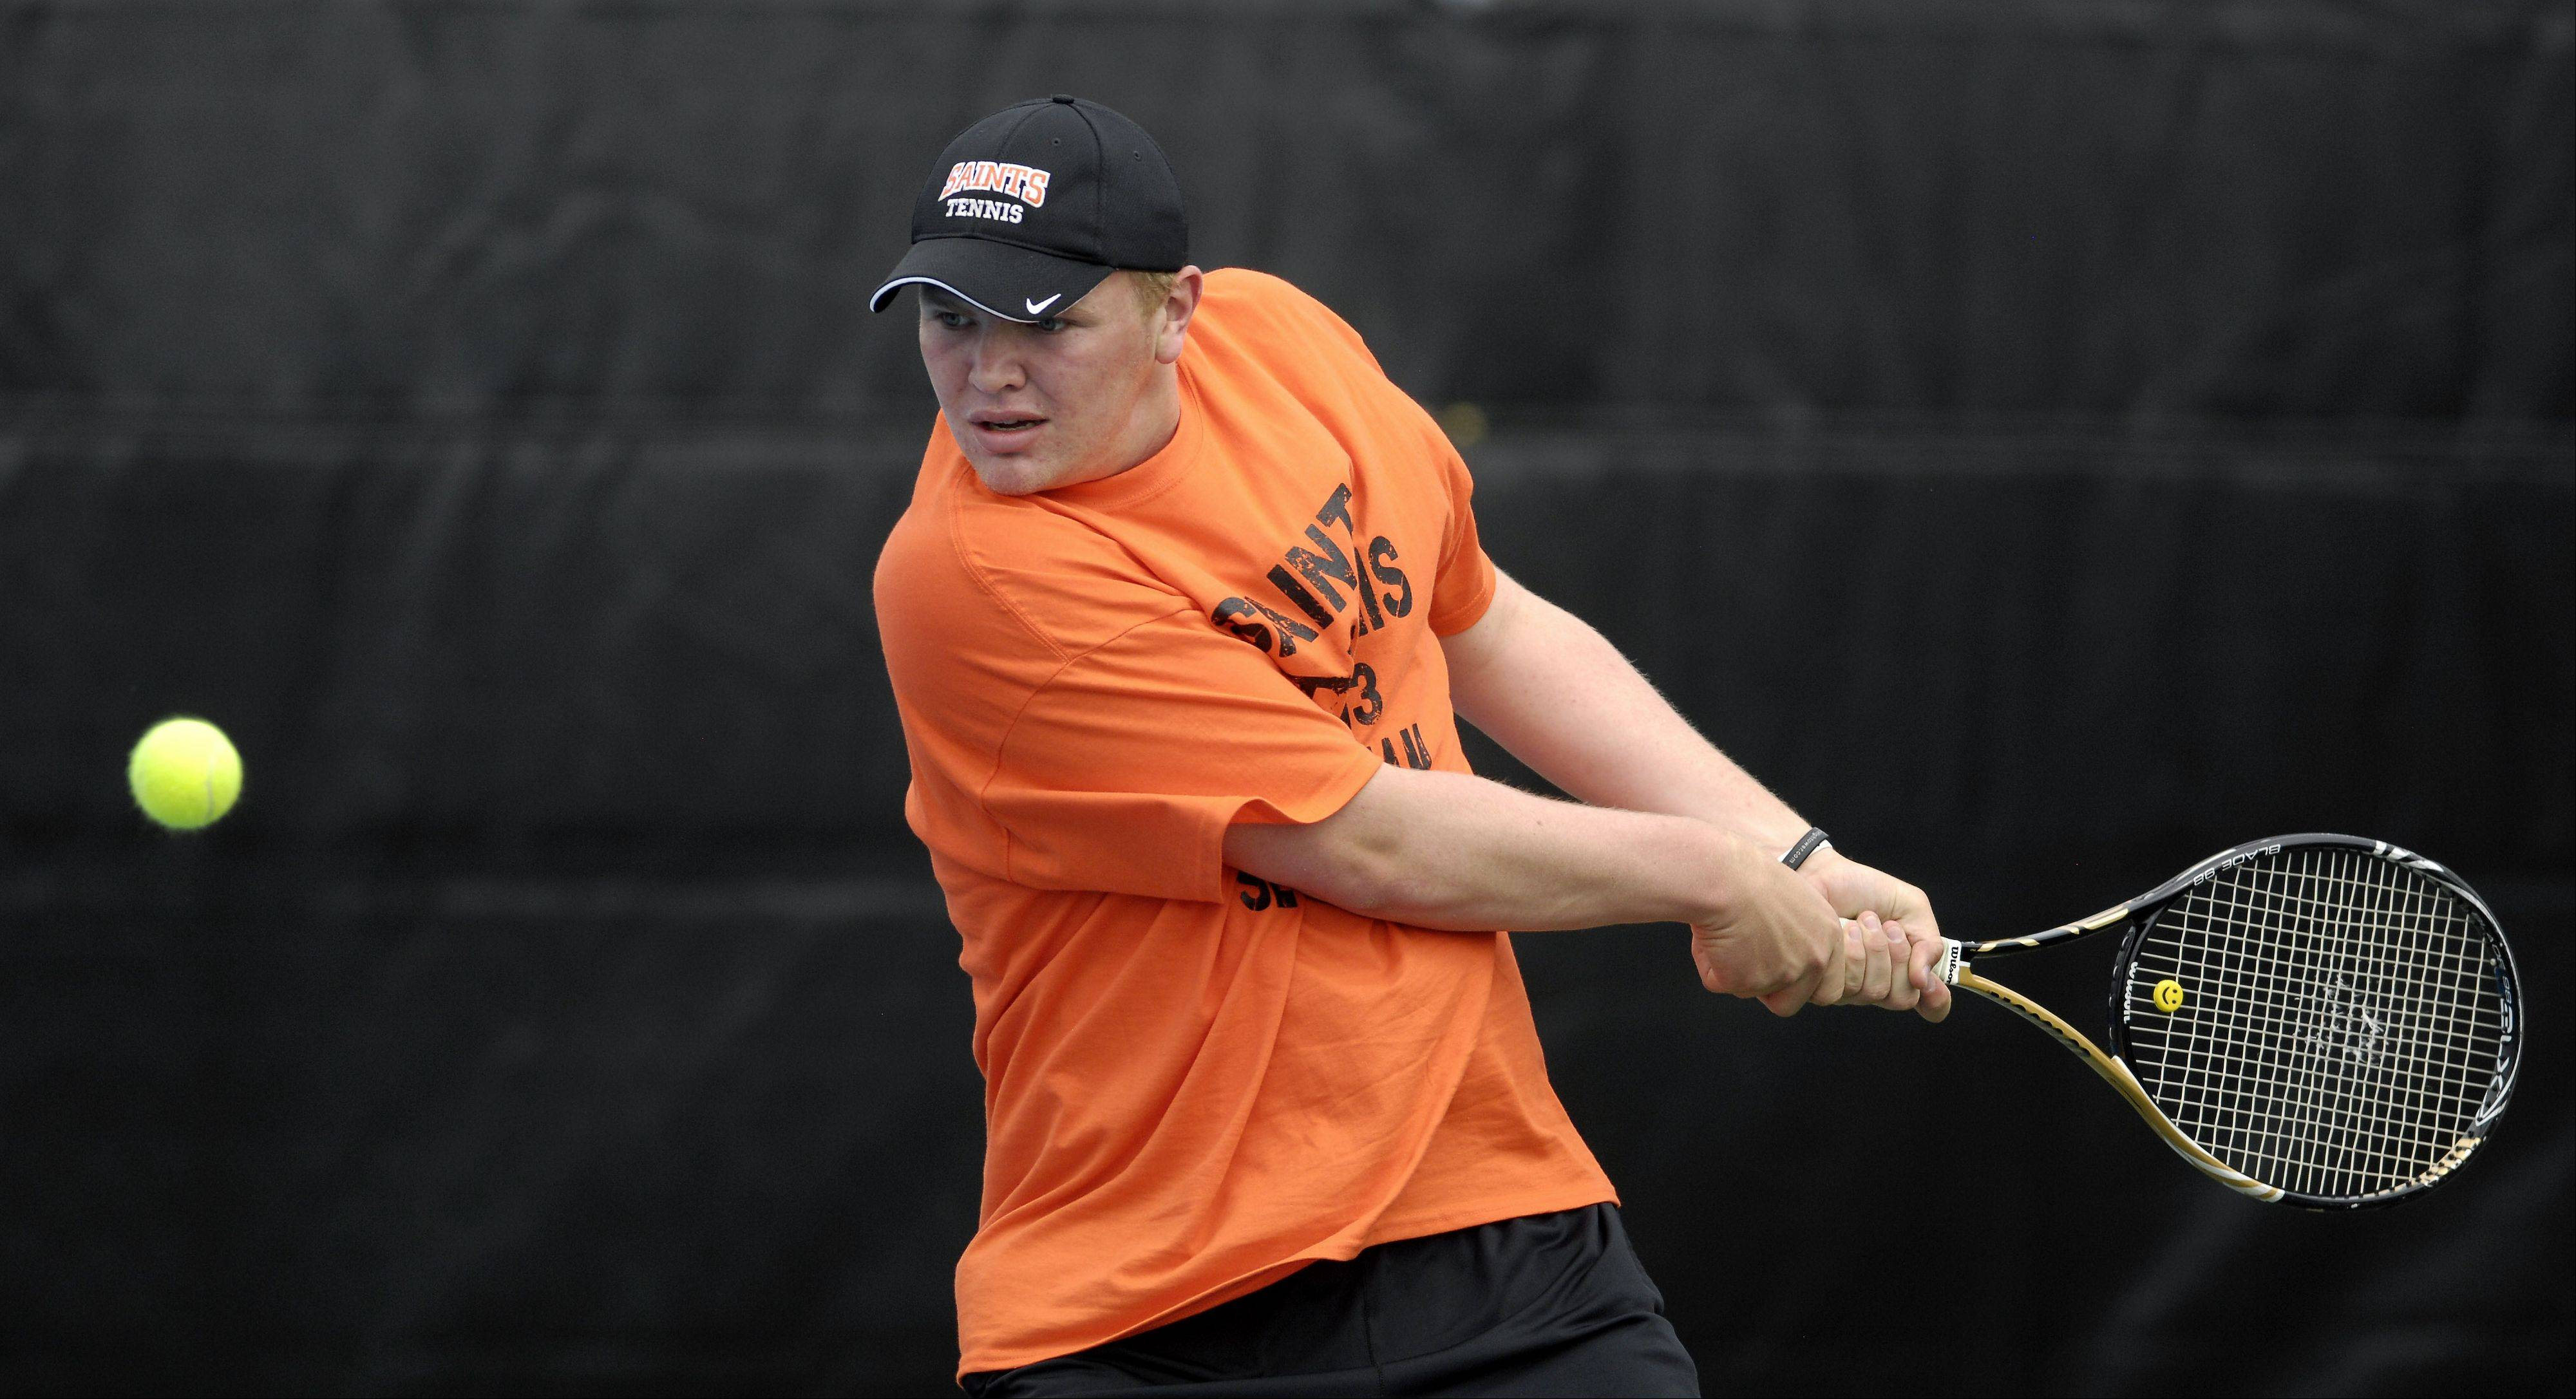 Rick West/rwest@dailyherald.com St. Charles East's Jasper Koenen readies his backhand during sectional tennis action at St. Charles North High School Friday.